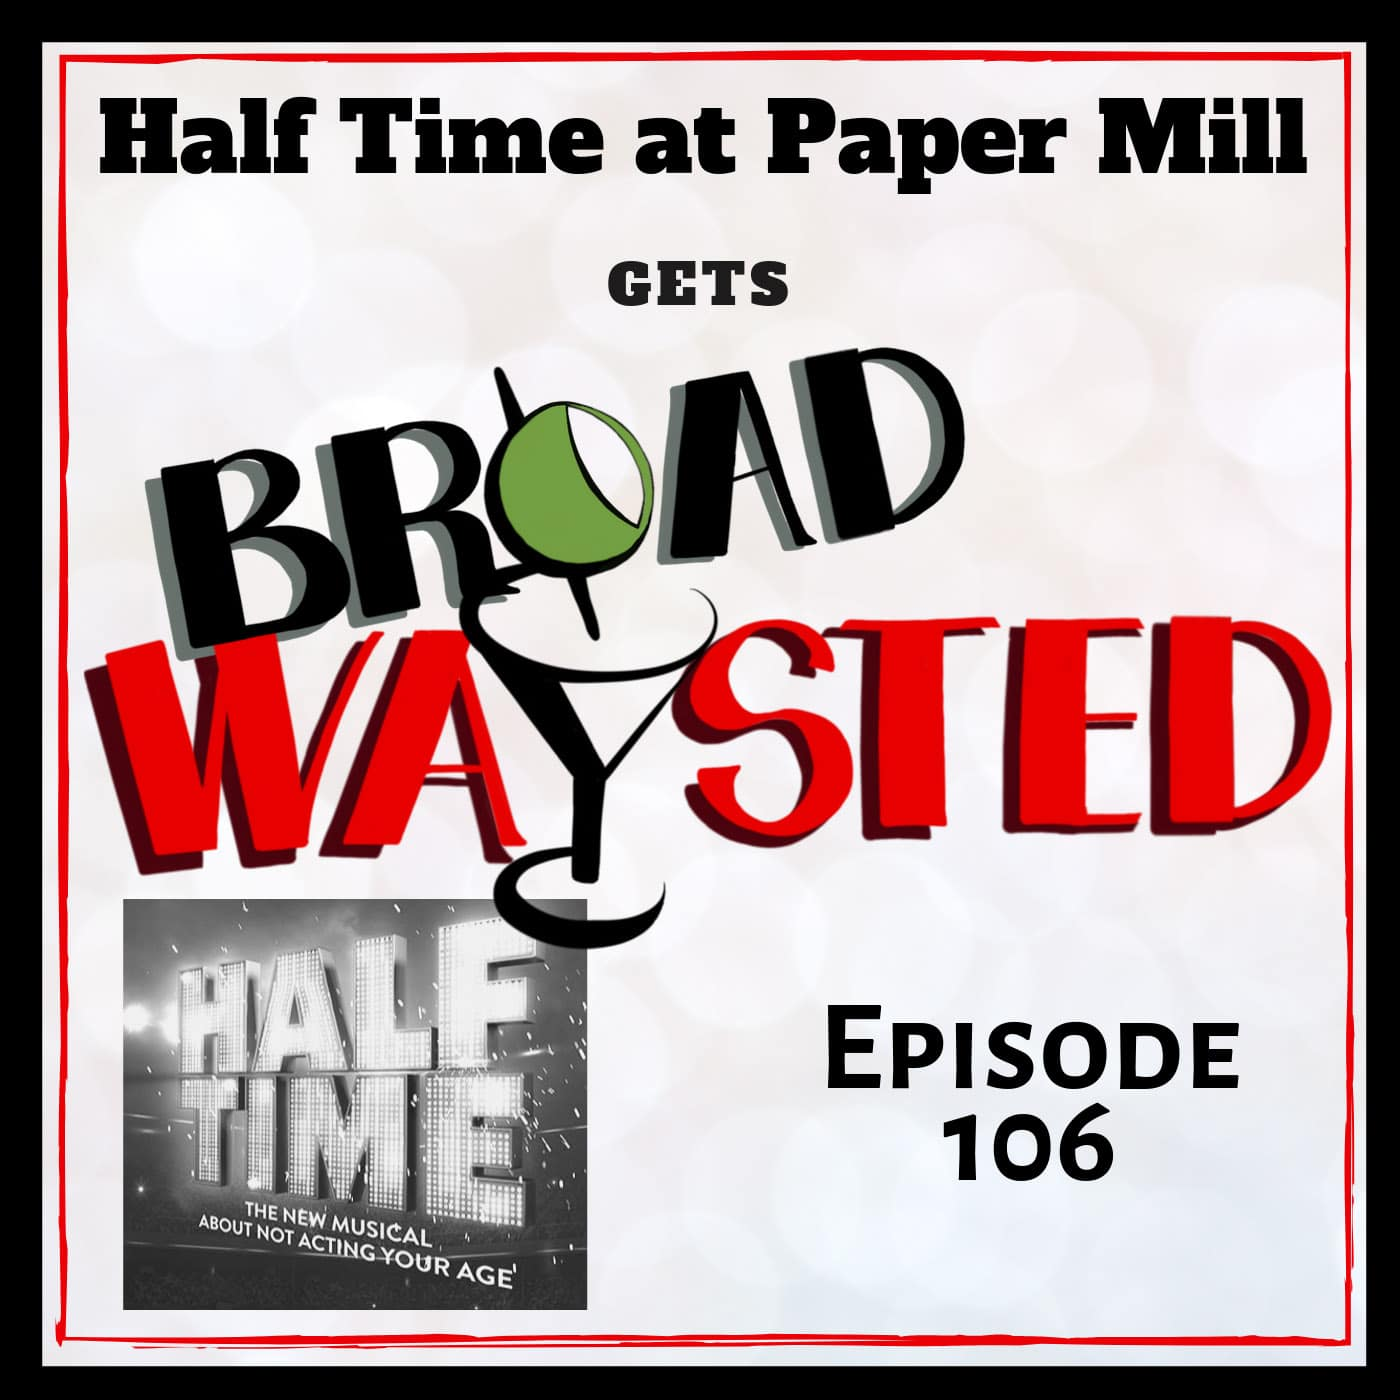 Broadwaysted Ep 106 Half Time